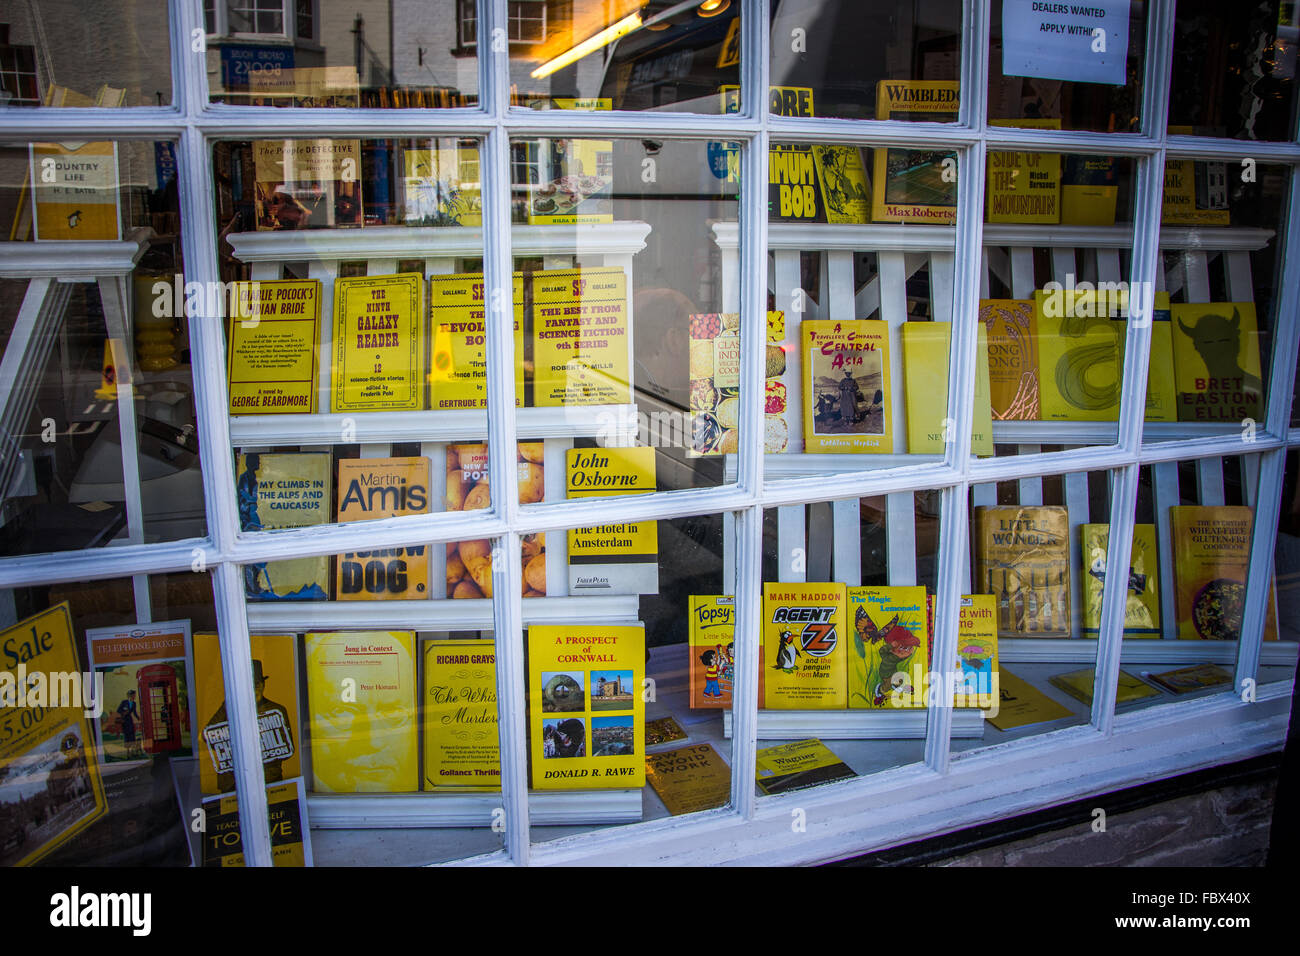 Bookshop window dressing in Hay-on-Wye, Wales Stock Photo